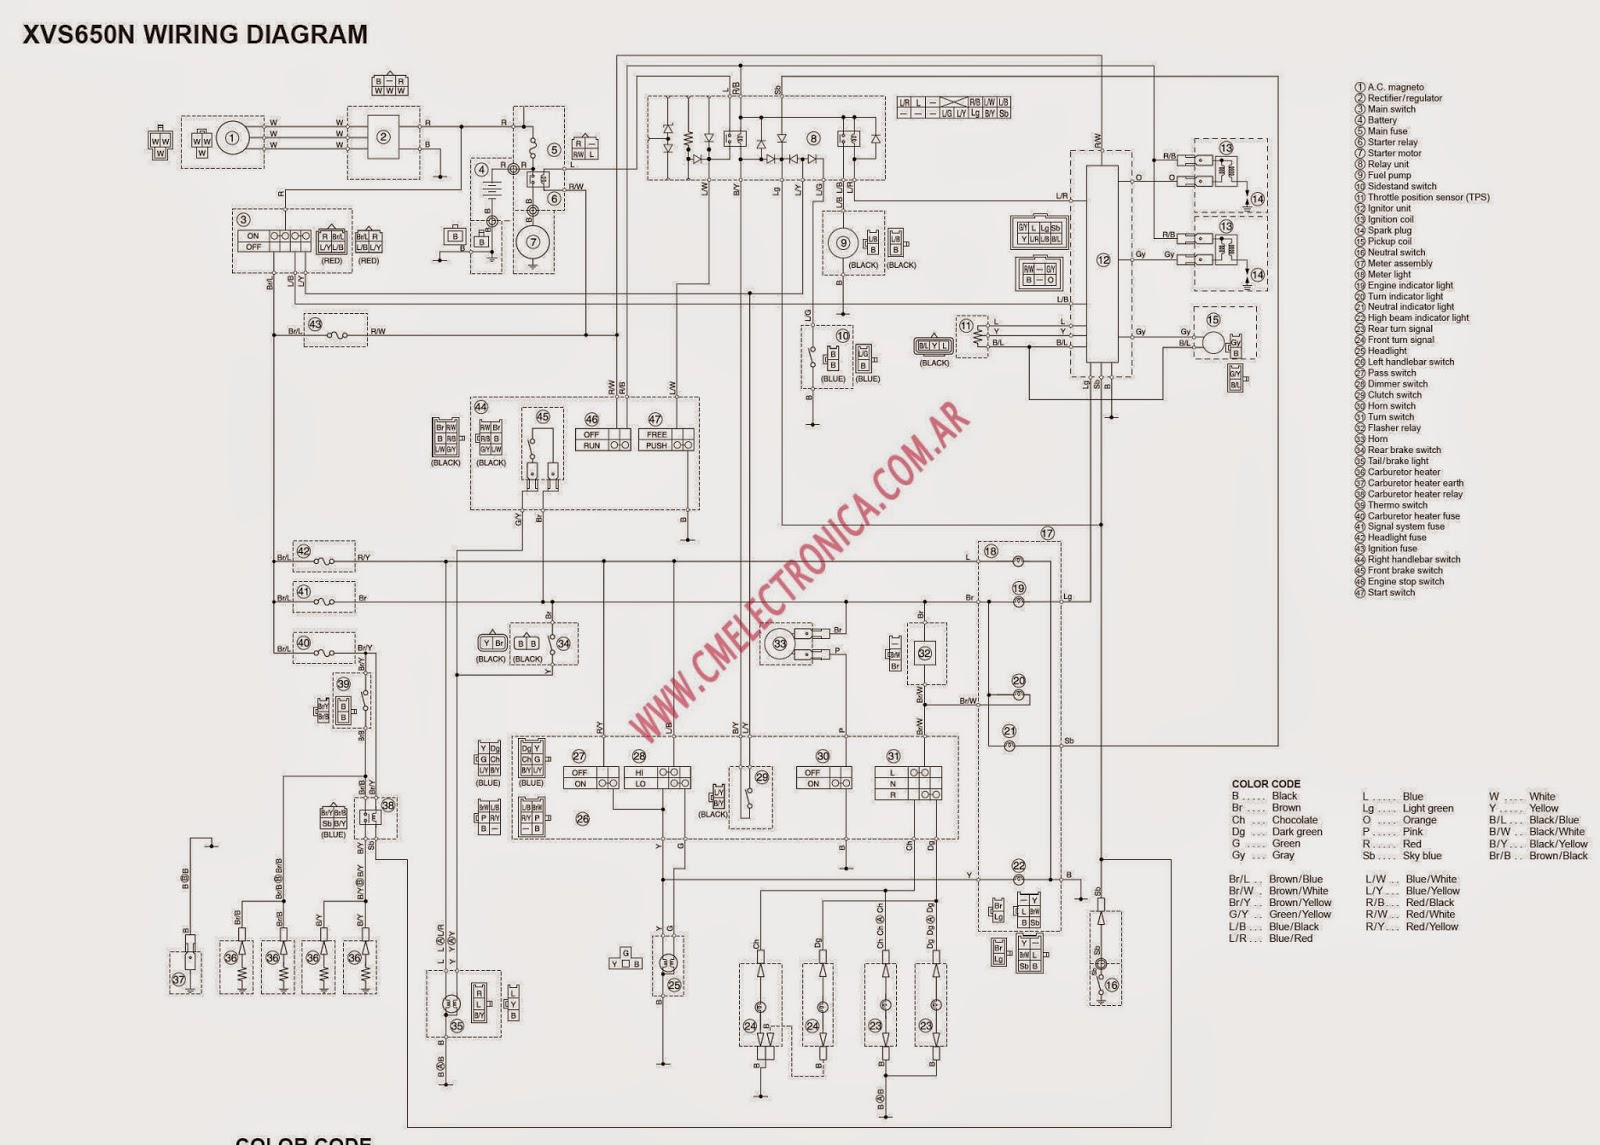 yamaha 650 chopper wiring diagrams wiring diagram todays1999 yamaha 650 wiring diagram completed wiring diagrams 1982 [ 1600 x 1145 Pixel ]